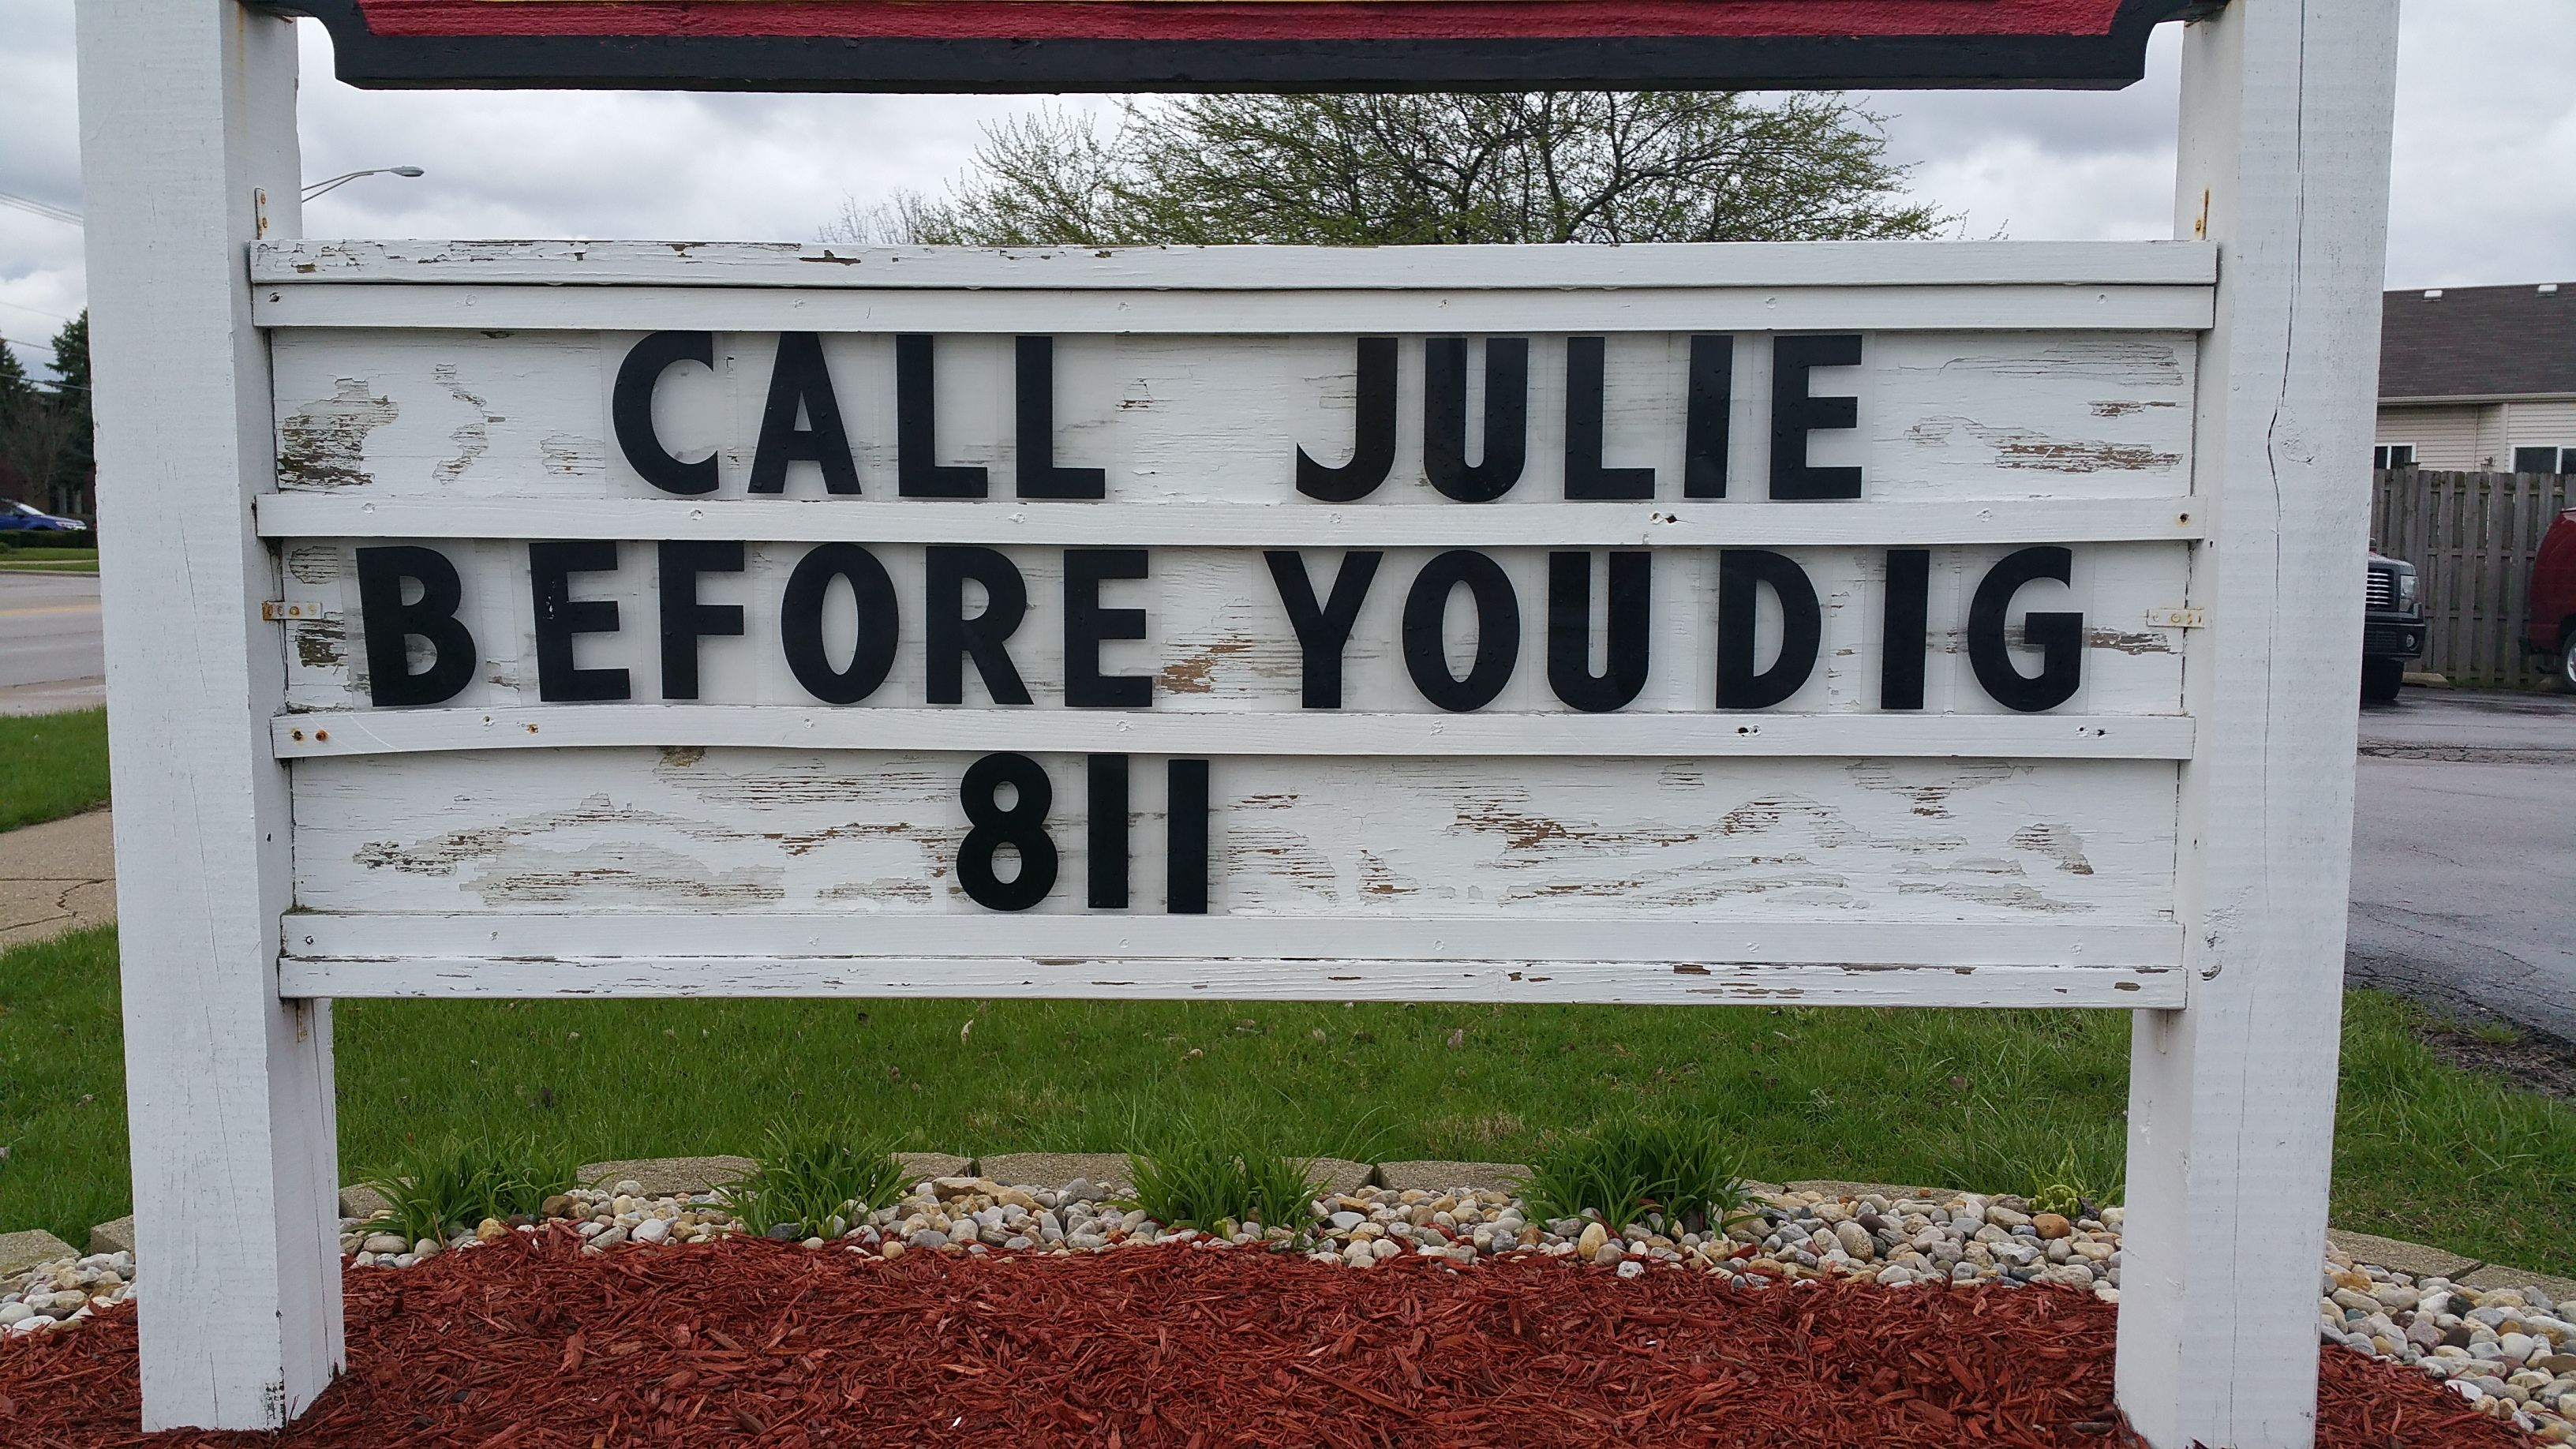 My dad helped found JULIE in 1974 and was the president